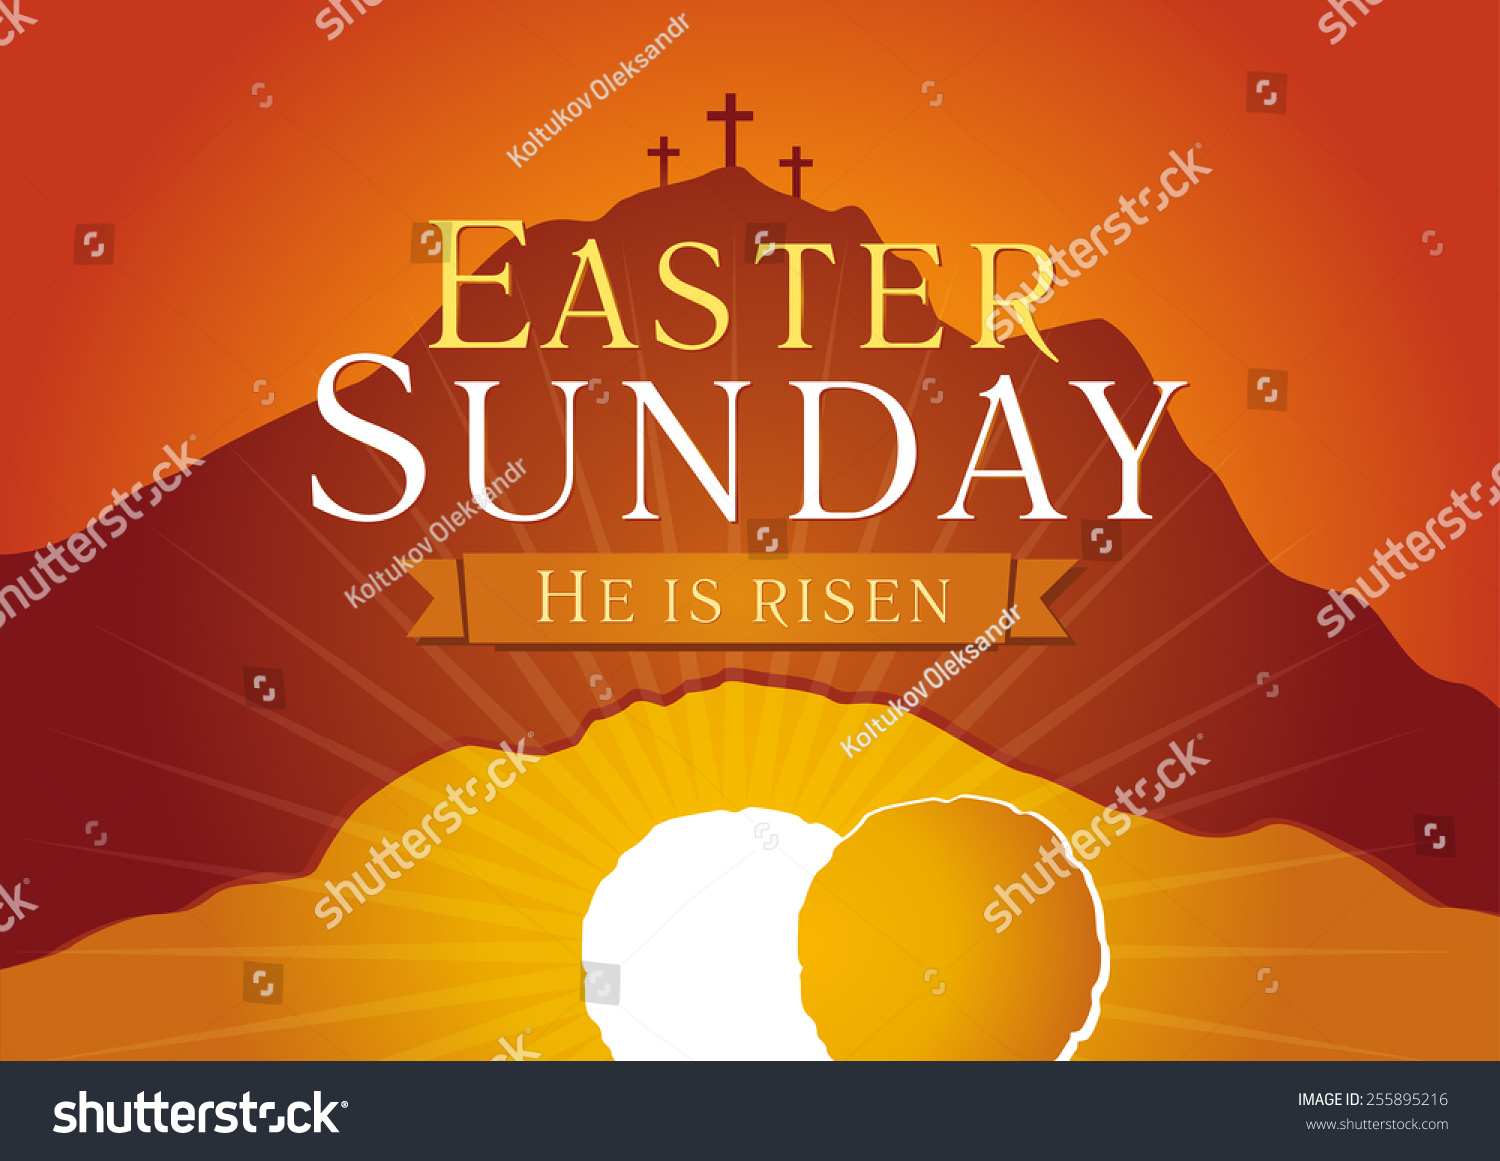 Easter sunday he risen greetings invite stock vector 255895216 easter sunday he is risen greetings invite vector card calvary sunrise with m4hsunfo